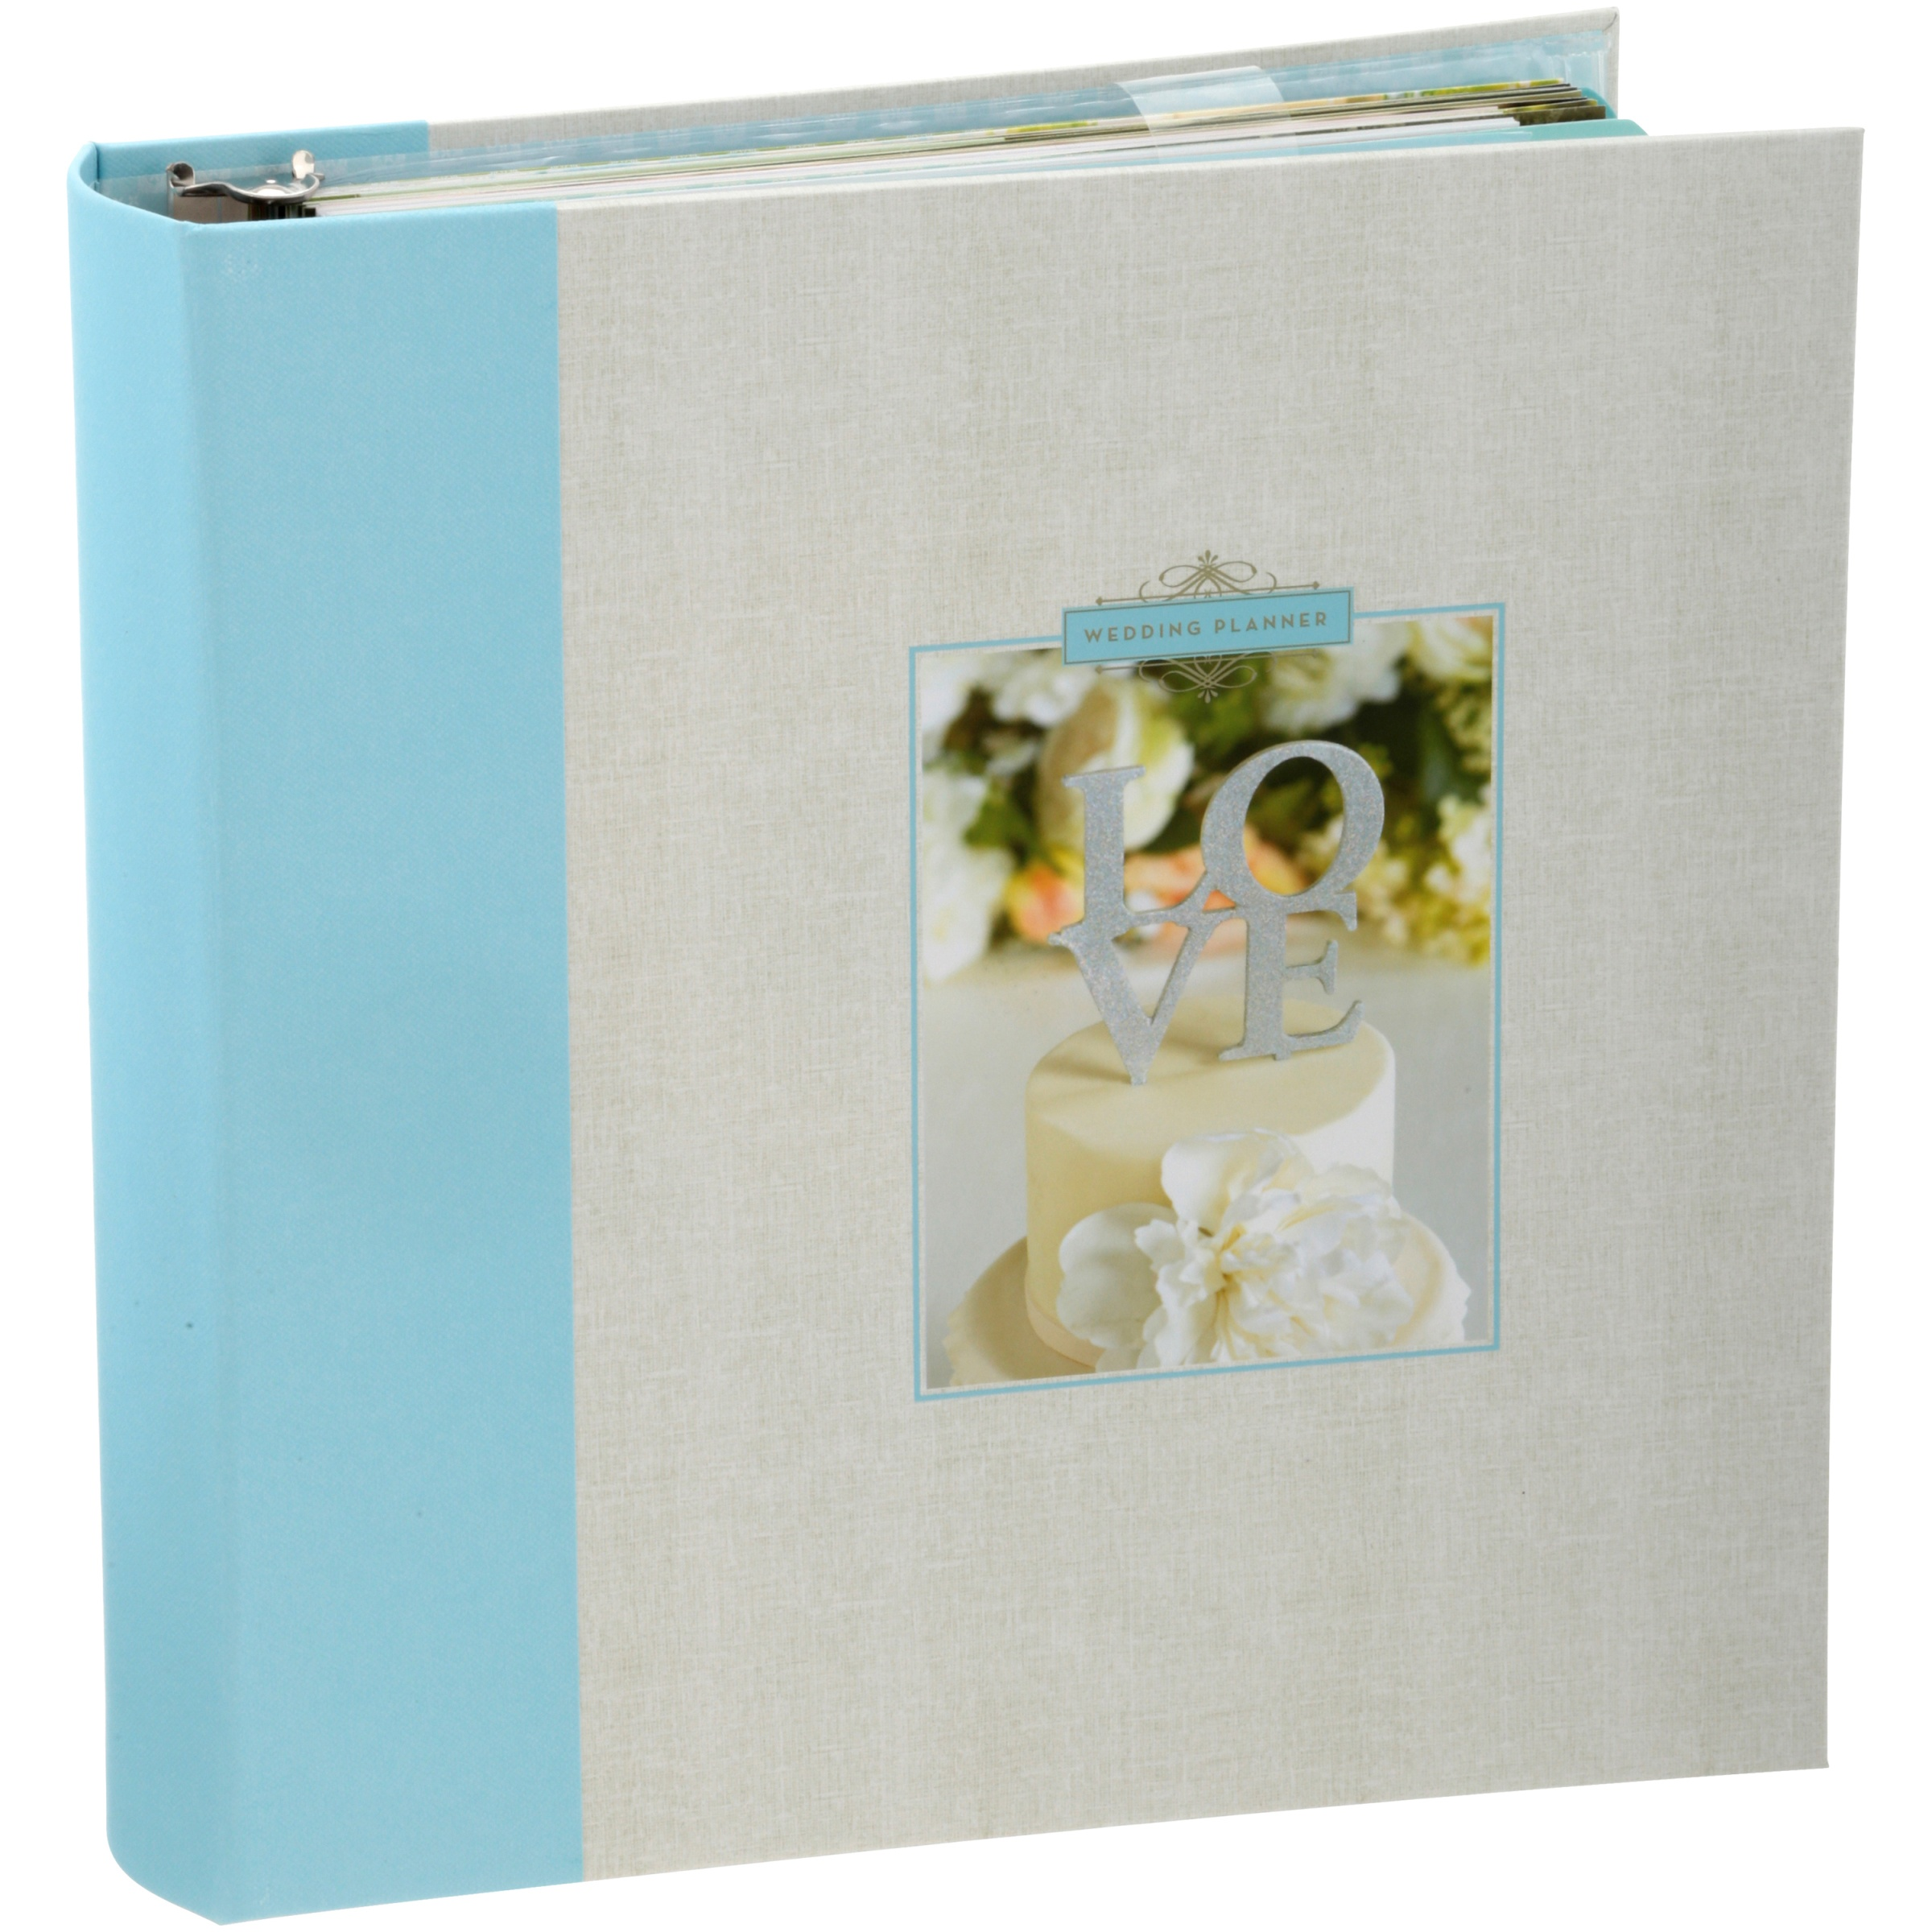 Gartner Studios Wedding Planner - 11.6 x 11.6 inches